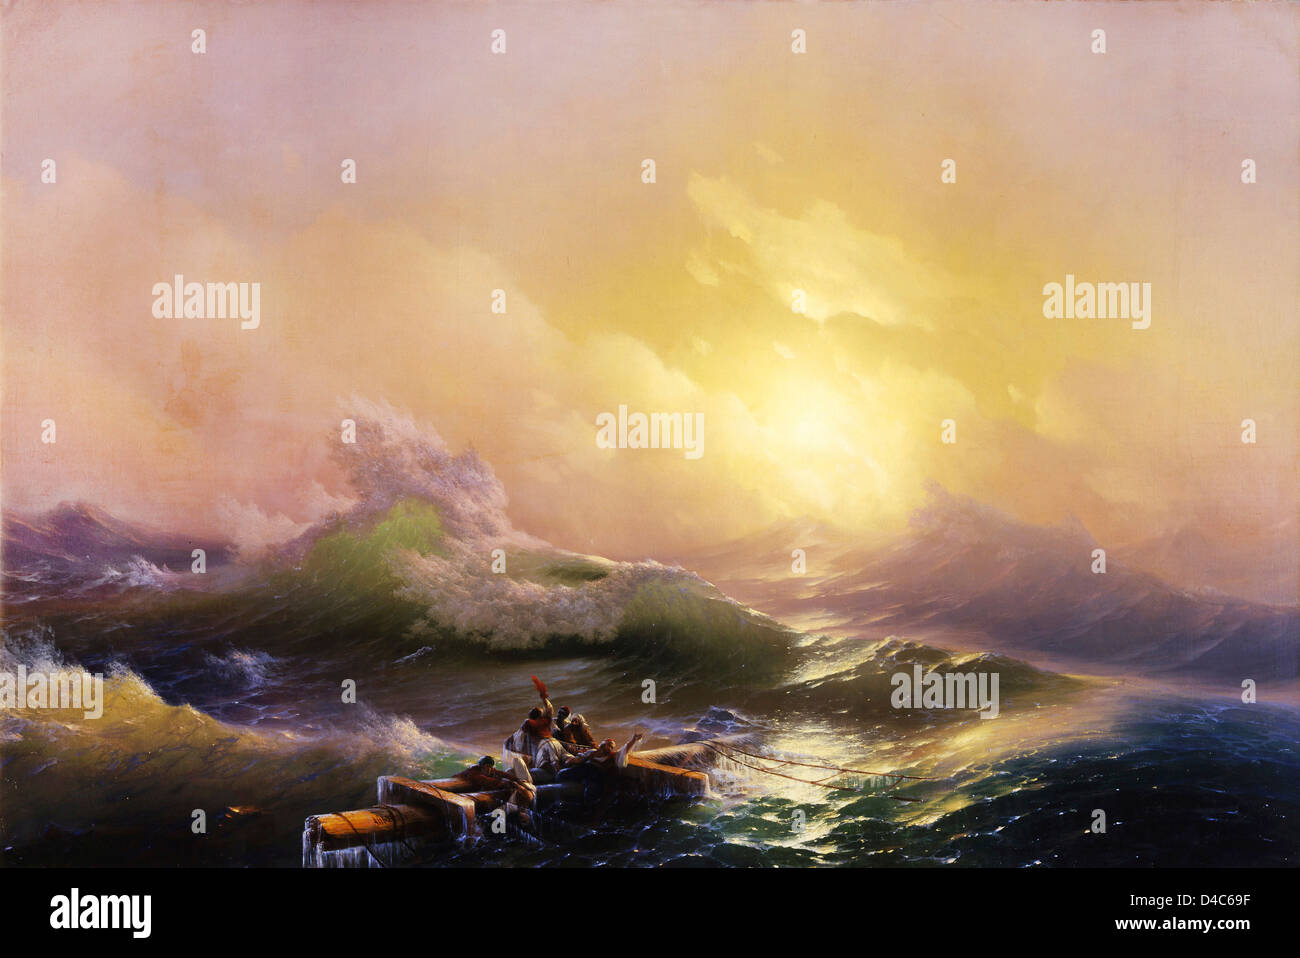 Ivan Aivazovsky, The Ninth Wave 1850 Oil on canvas. State Russian Museum, Saint Petersburg, Russia - Stock Image